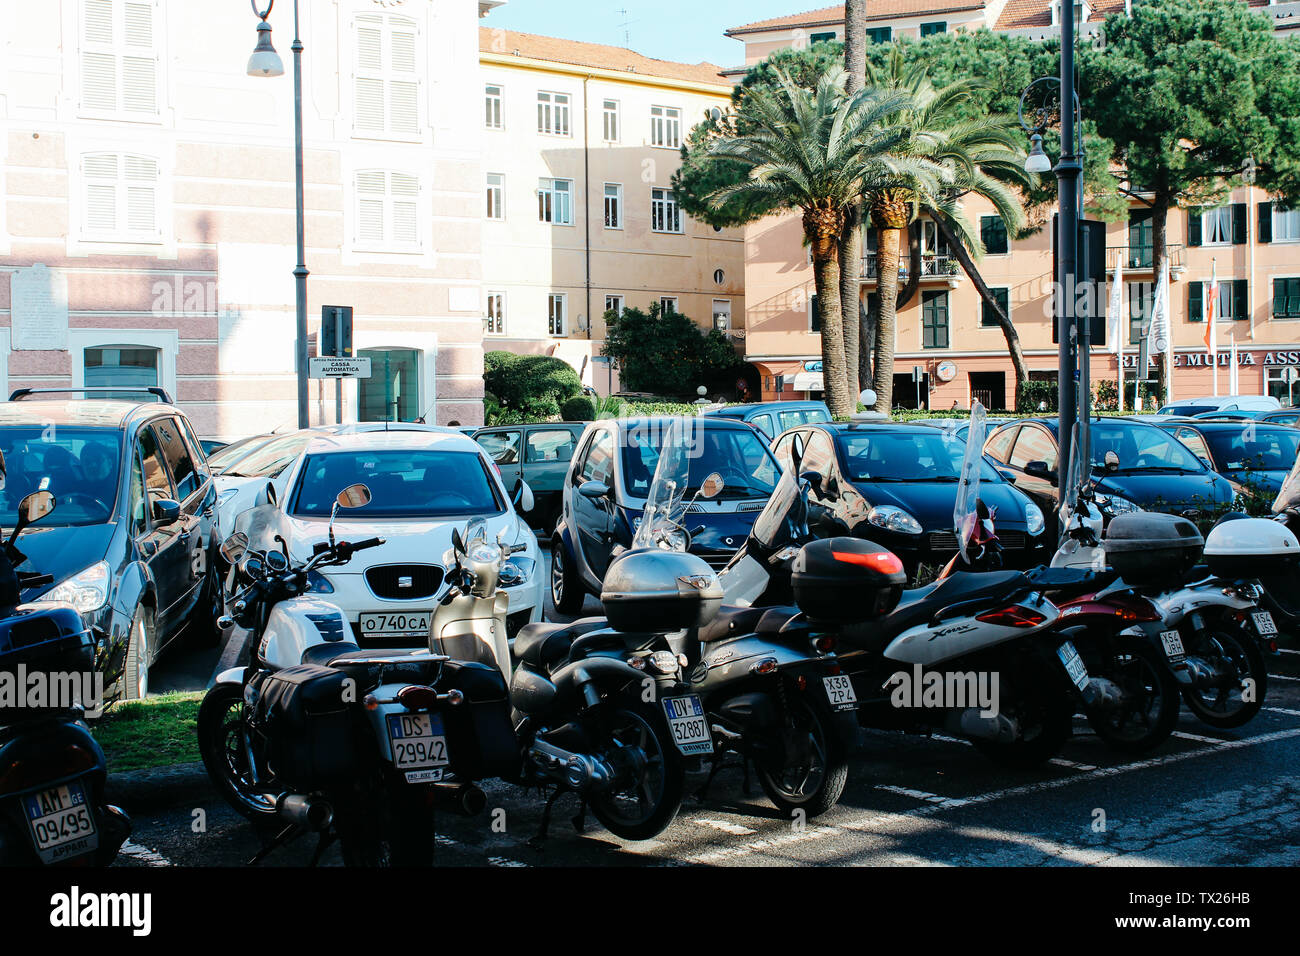 Rapallo, Italy - 03 27 2013: moped, scooters. cars on the parking. View of the streets of Rapallo - Stock Image